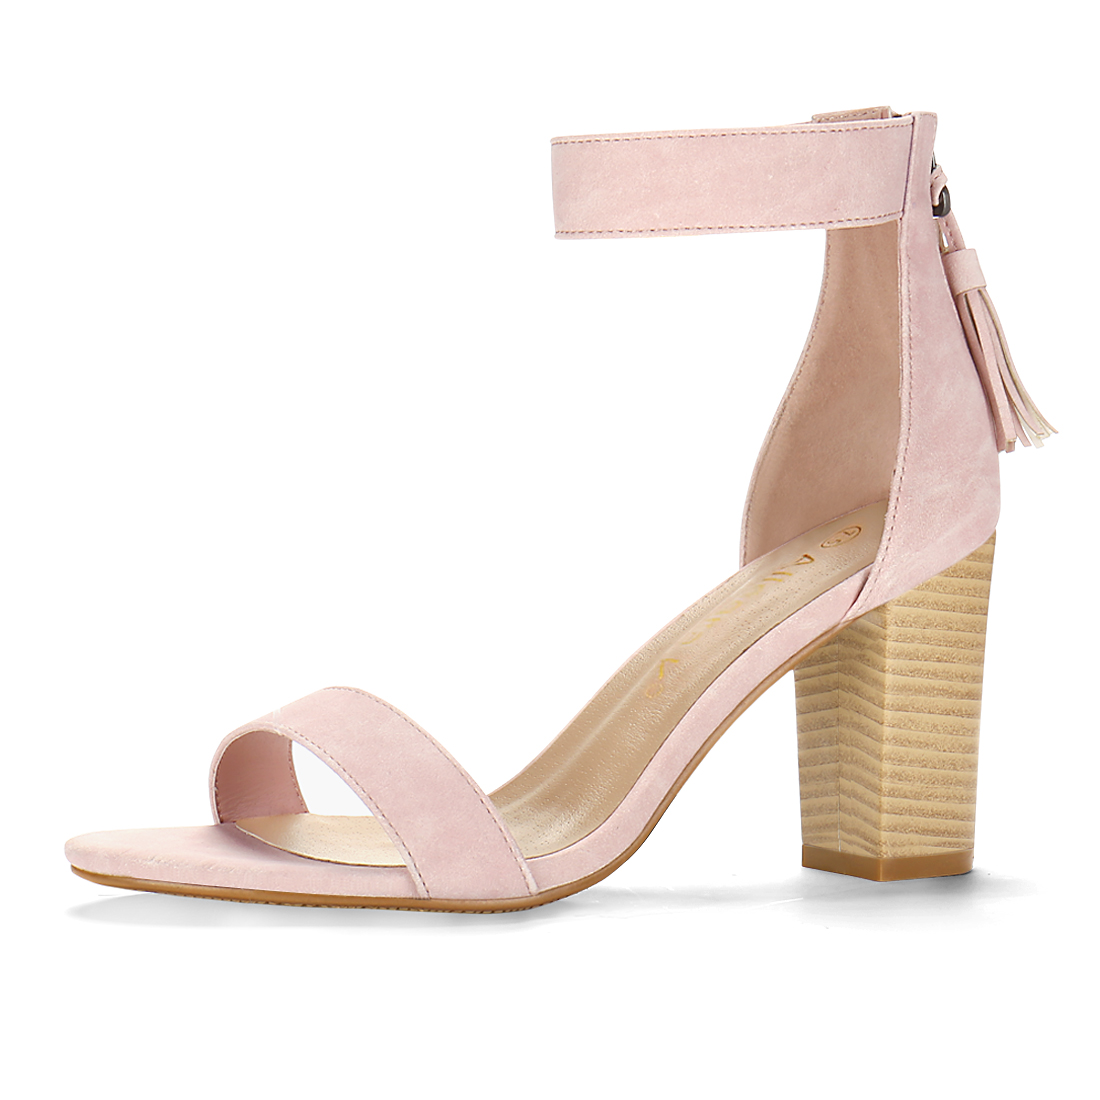 Women Open Toe Tassel Stacked Heel Ankle Strap Sandals Light Pink US 6